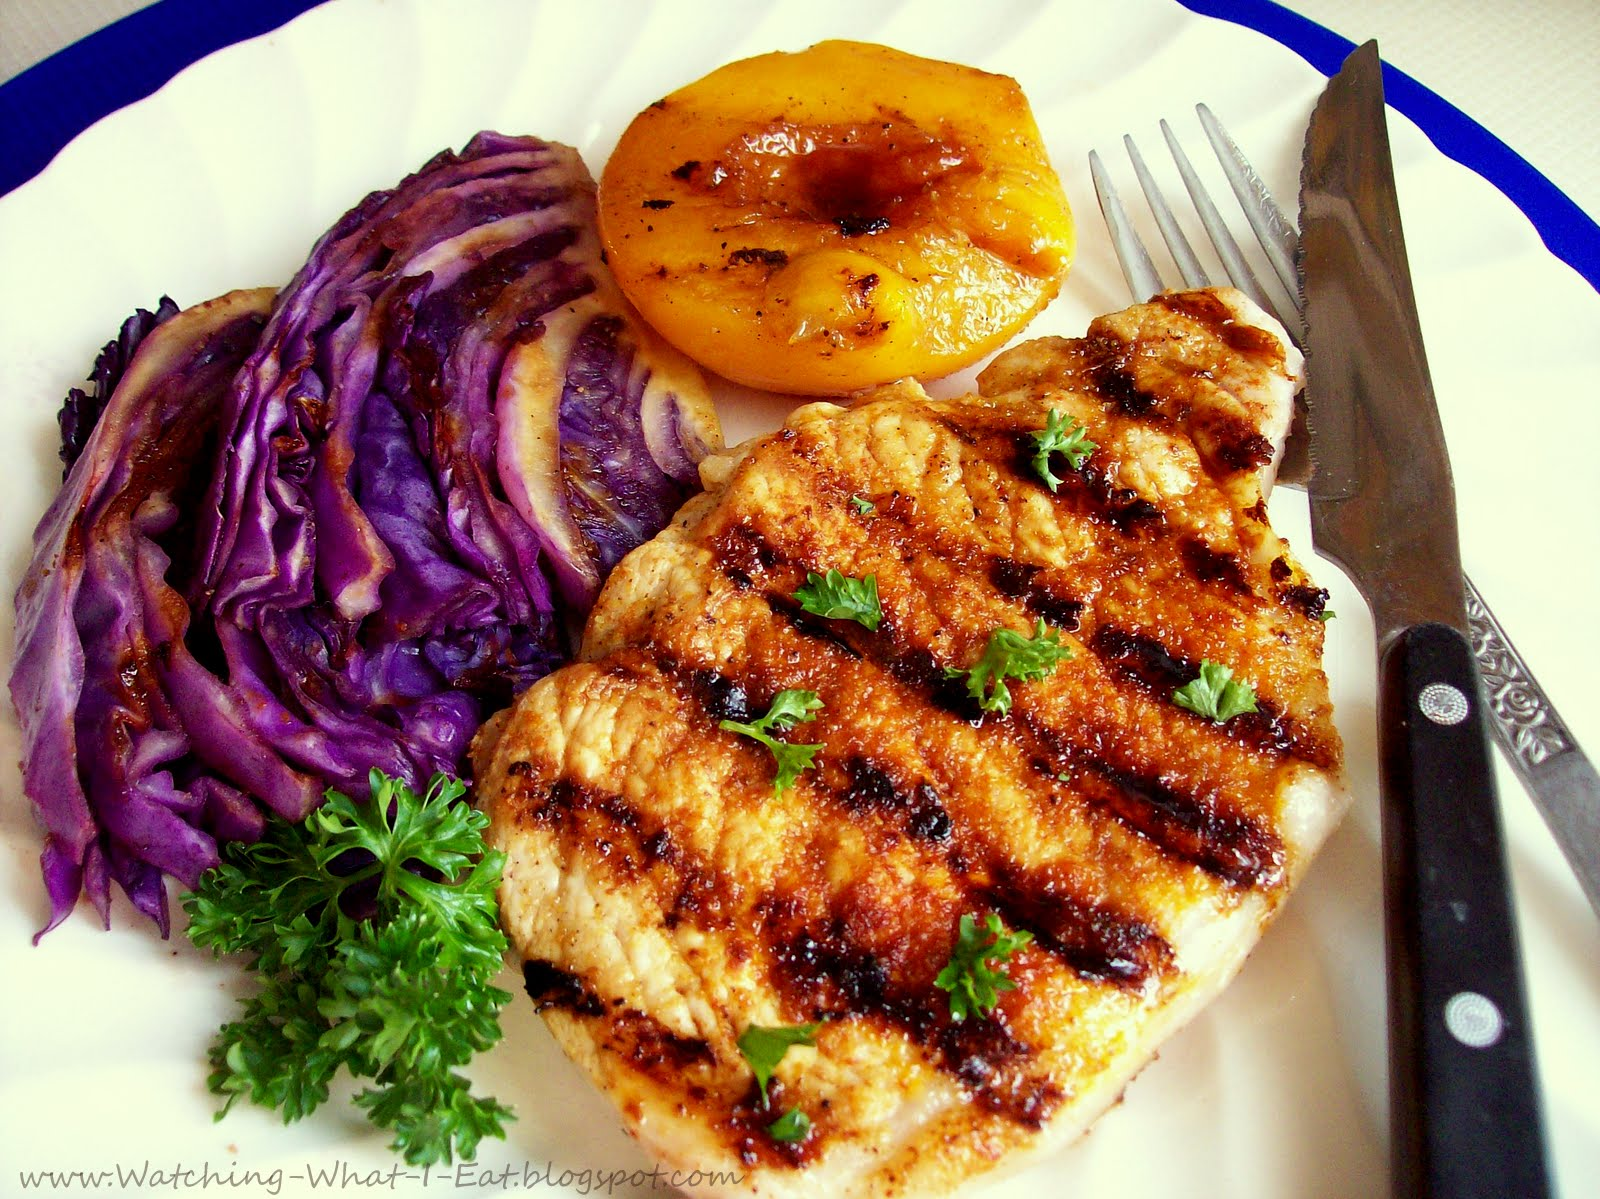 Watching What I Eat Grilled Pork Chops Peaches Cabbage Loving My George Foreman Grill